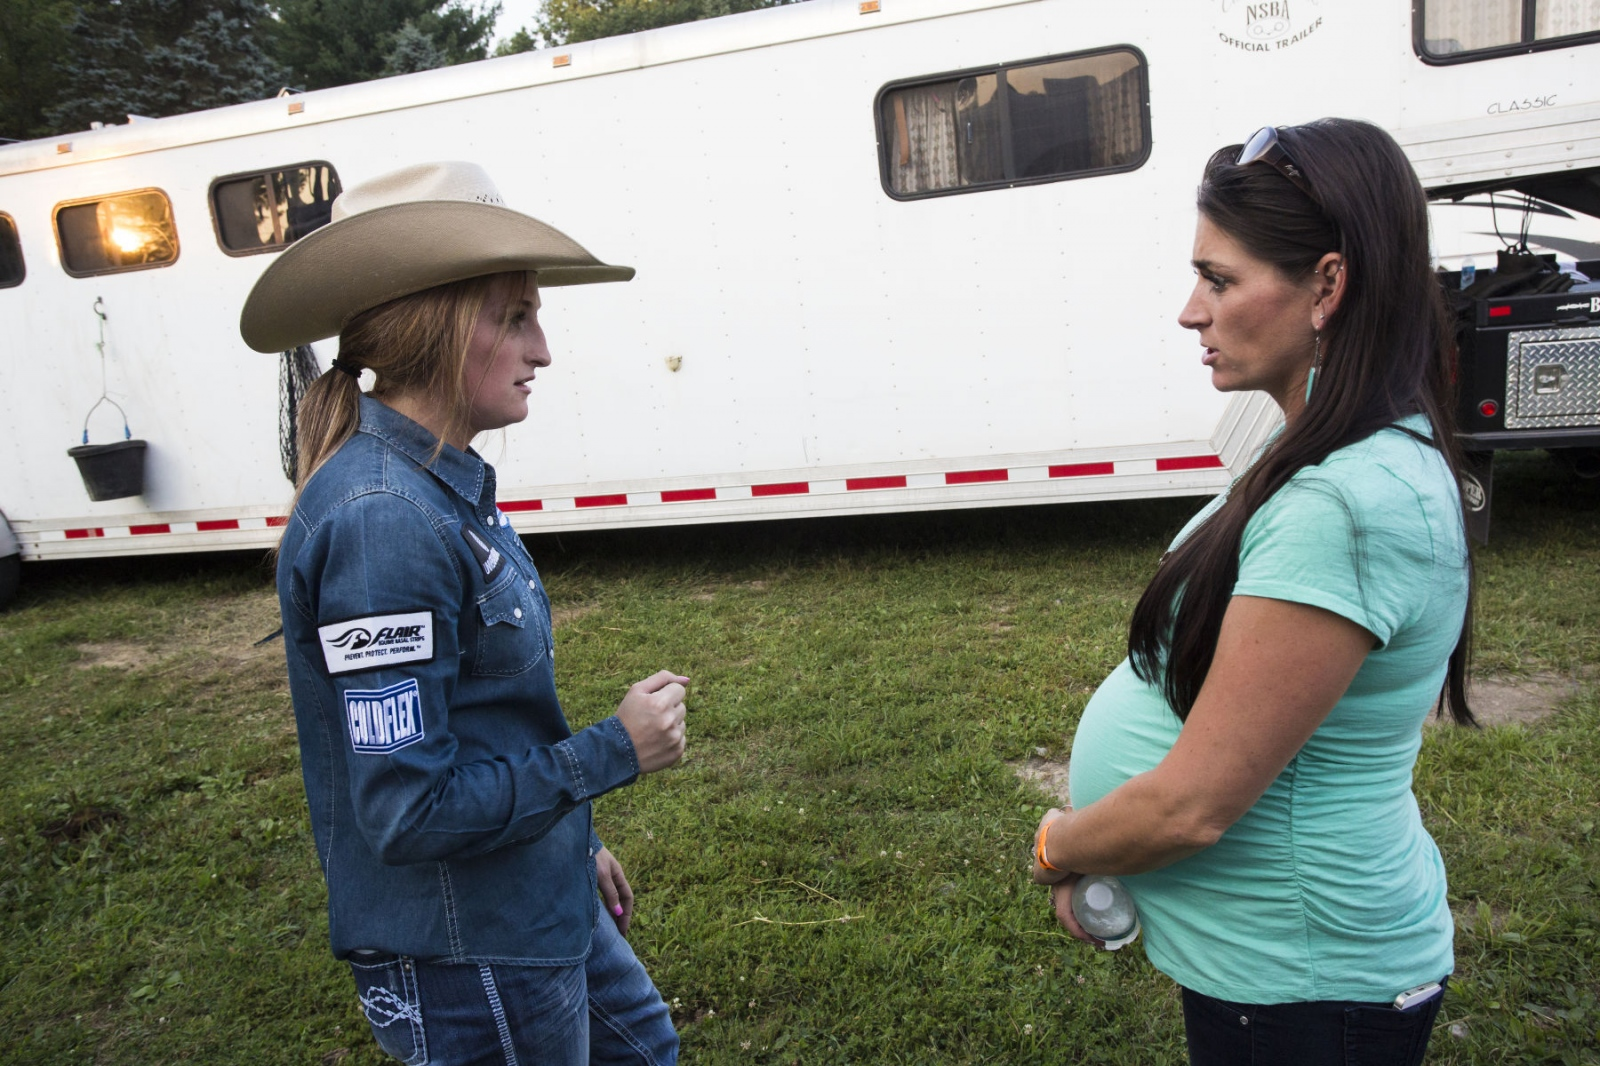 Taylor Young talking to Jayme Myers, her sister, and trainer, about barrel-racing techniques at Malibu Rodeo in Milford, Pennsylvania.  (Kevin C. Downs/Agence Cosmos)